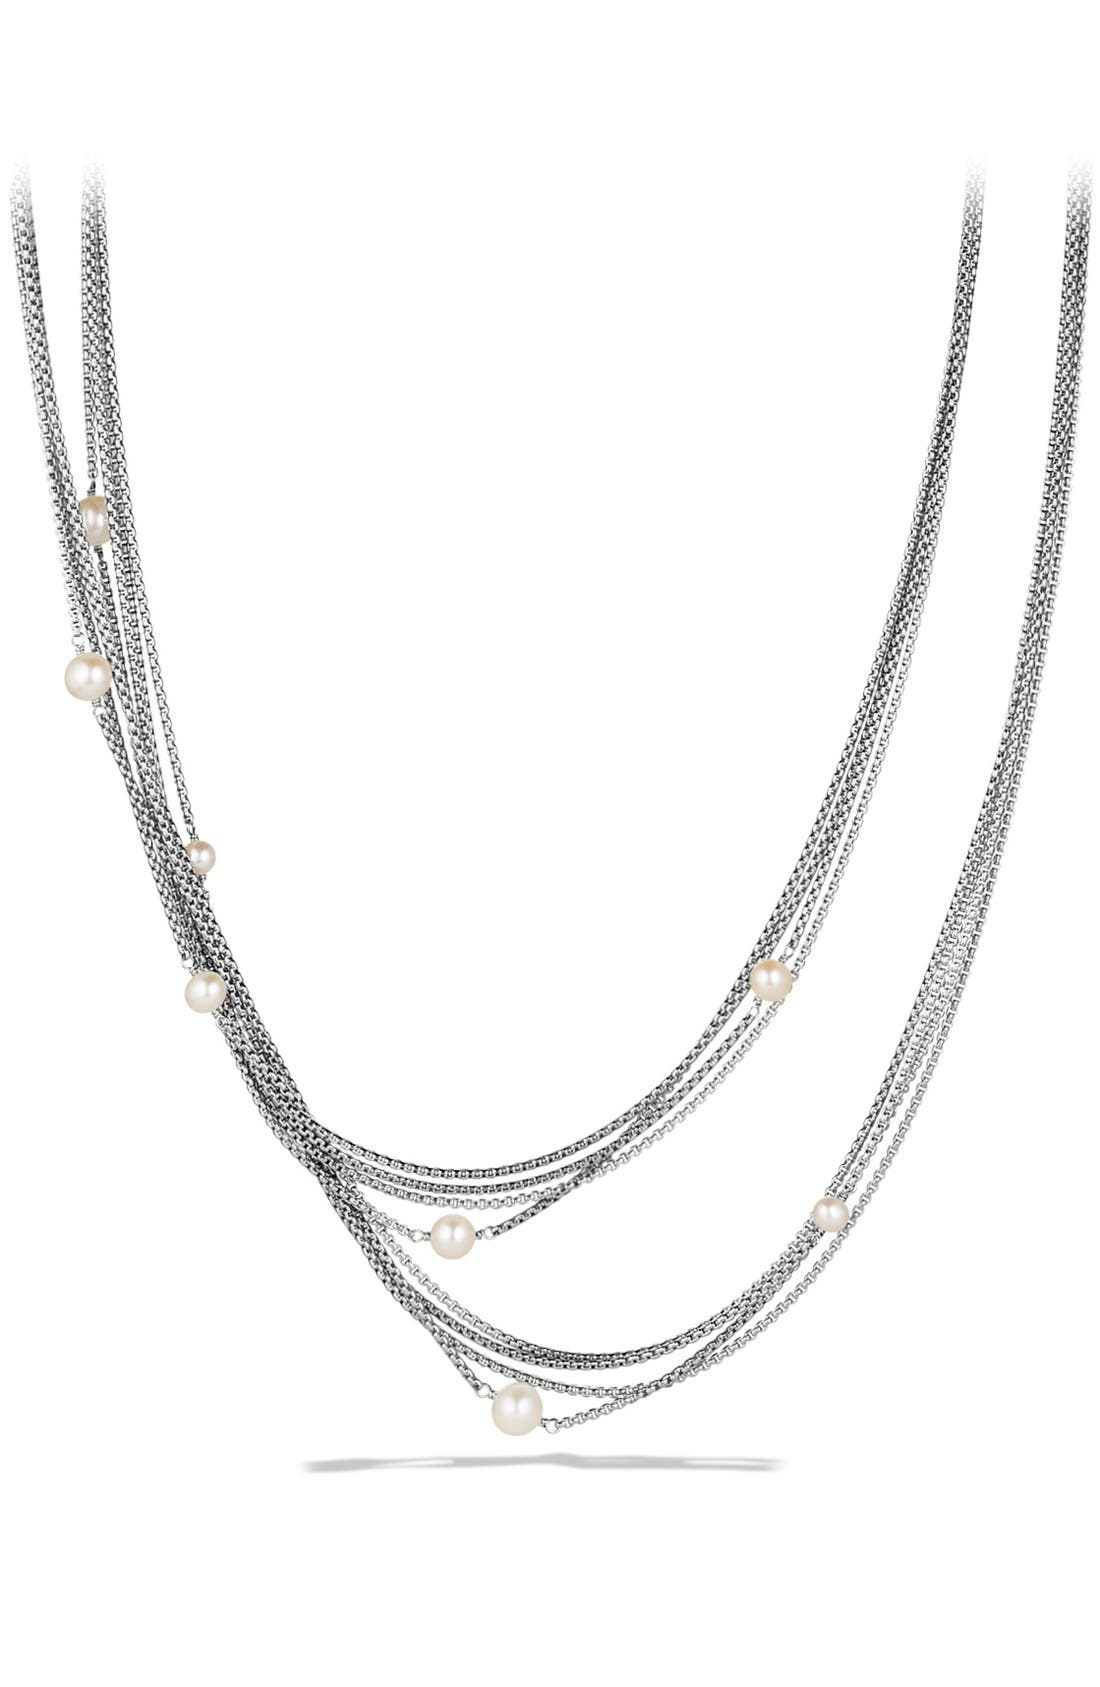 DAVID YURMAN, Four-Row Chain Necklace with Pearls, Main thumbnail 1, color, PEARL